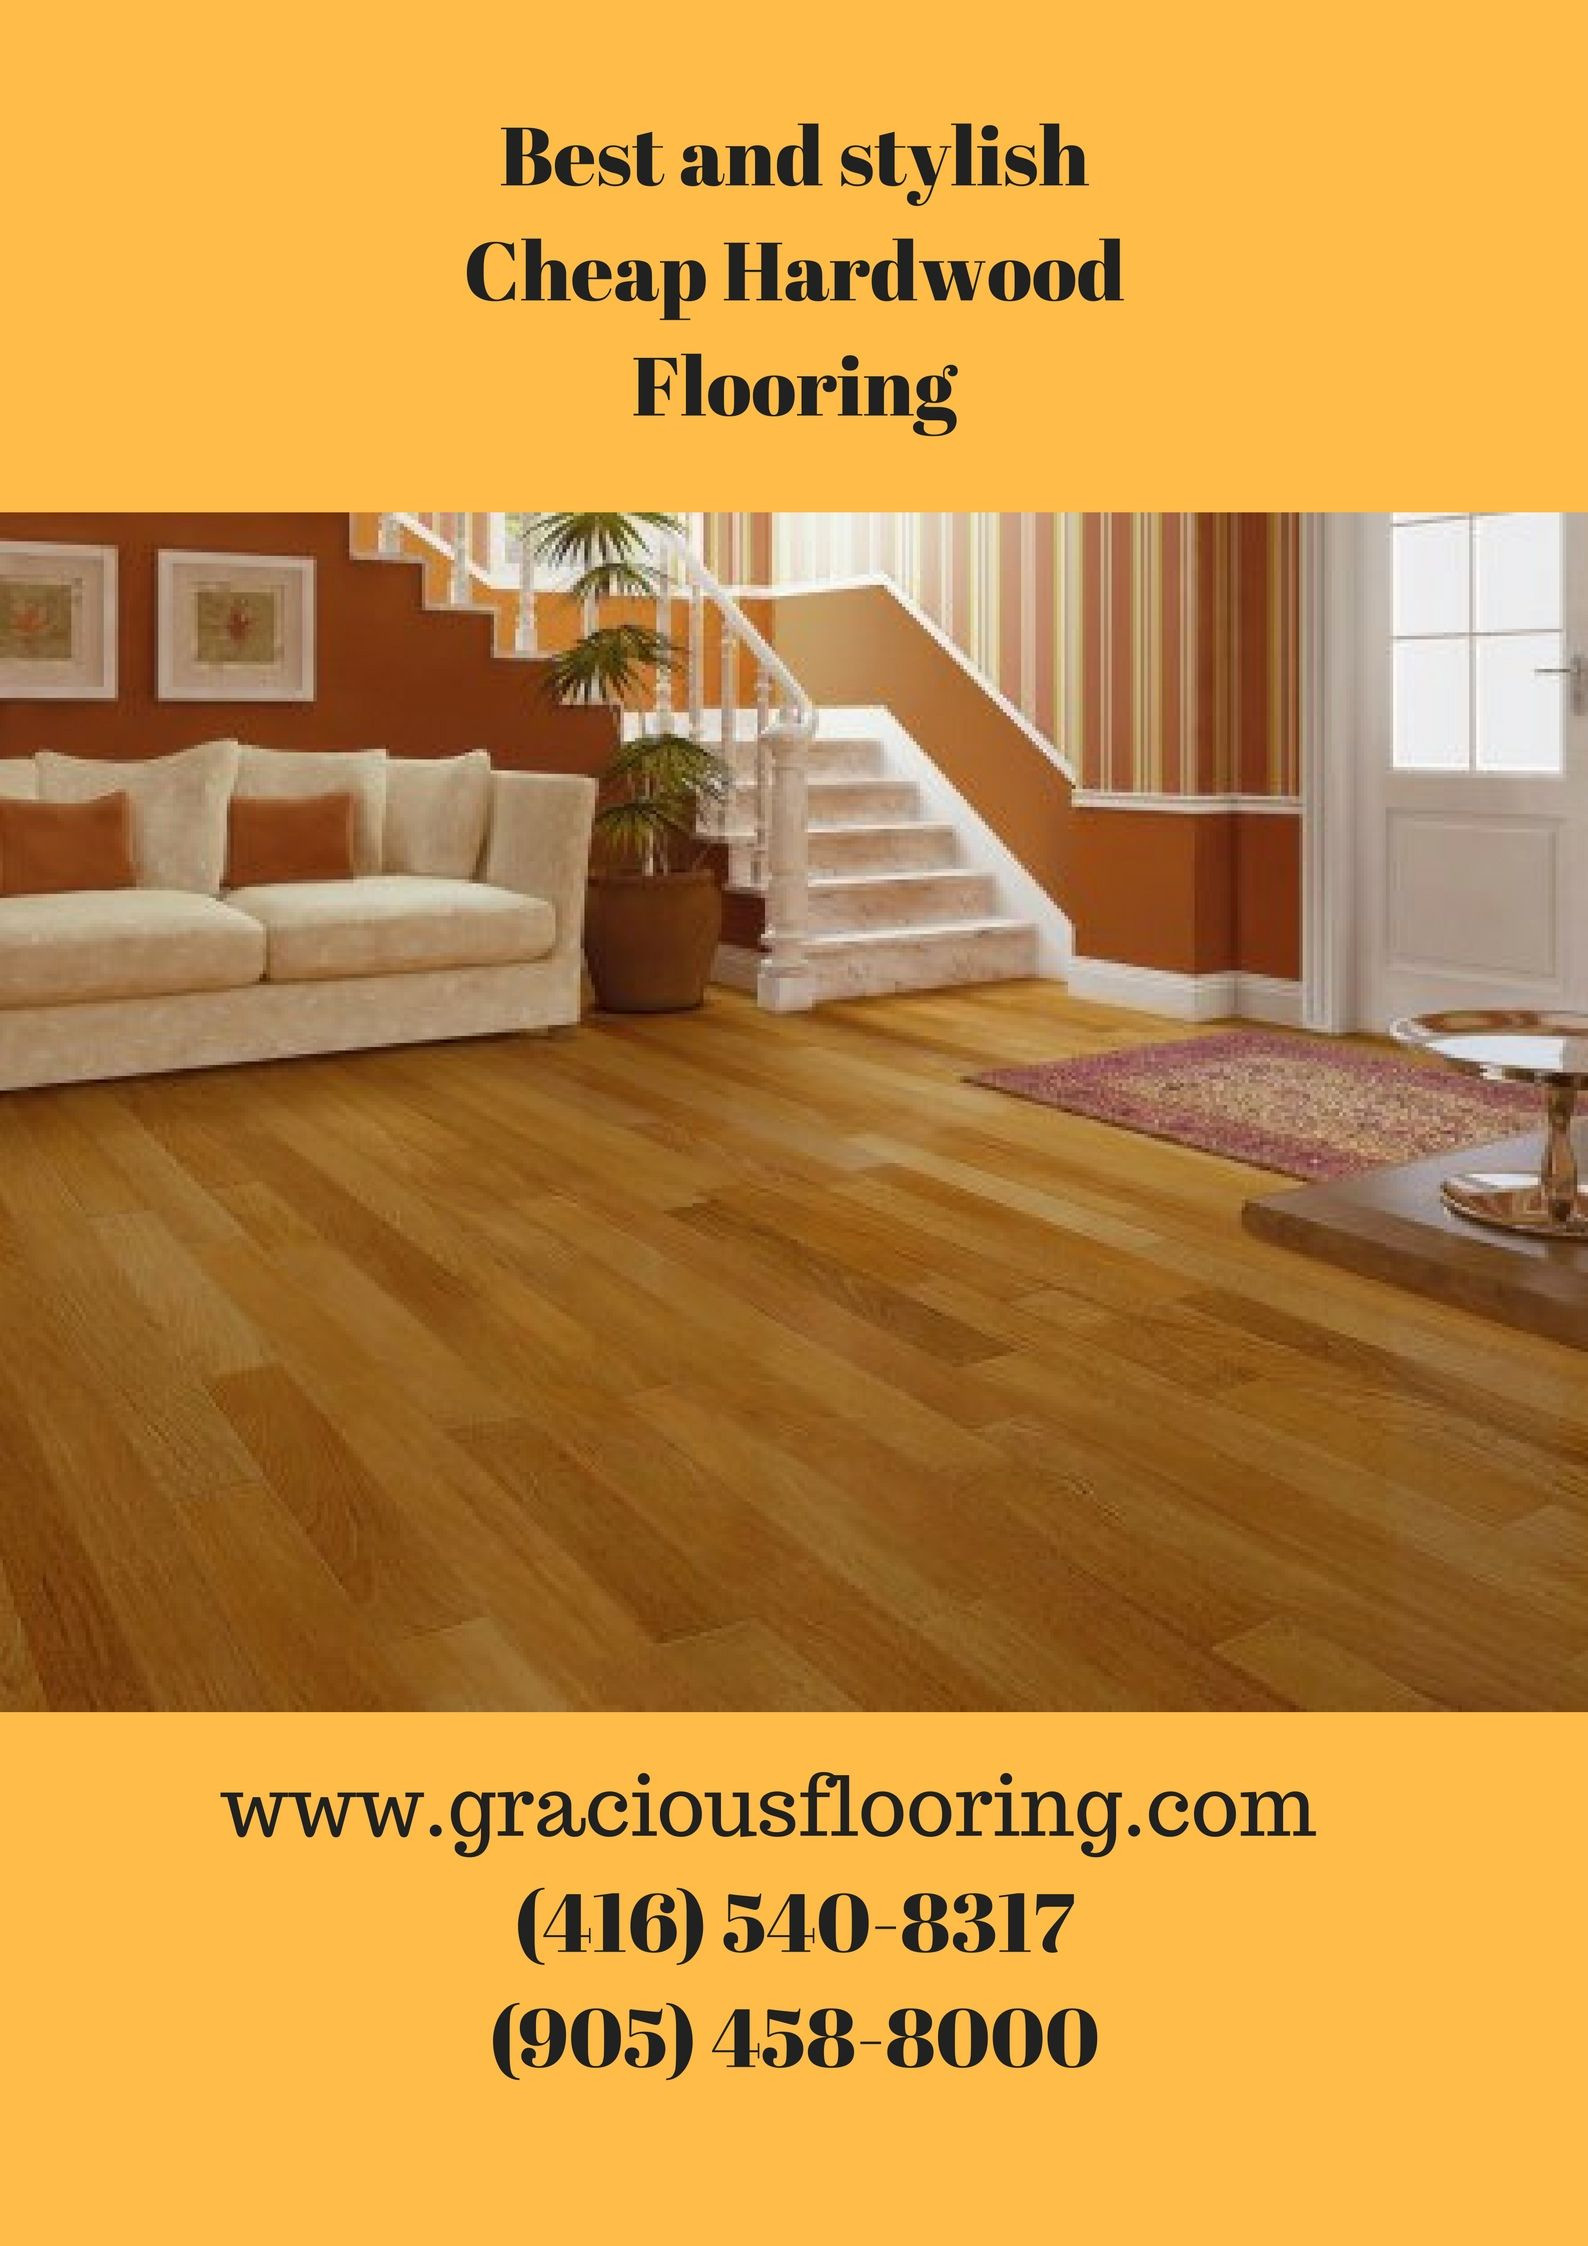 discount hardwood flooring mississauga of for cheap hardwood flooring at unbelievable rate contact regarding brampton hardwood flooring store brampton toronto mississauga